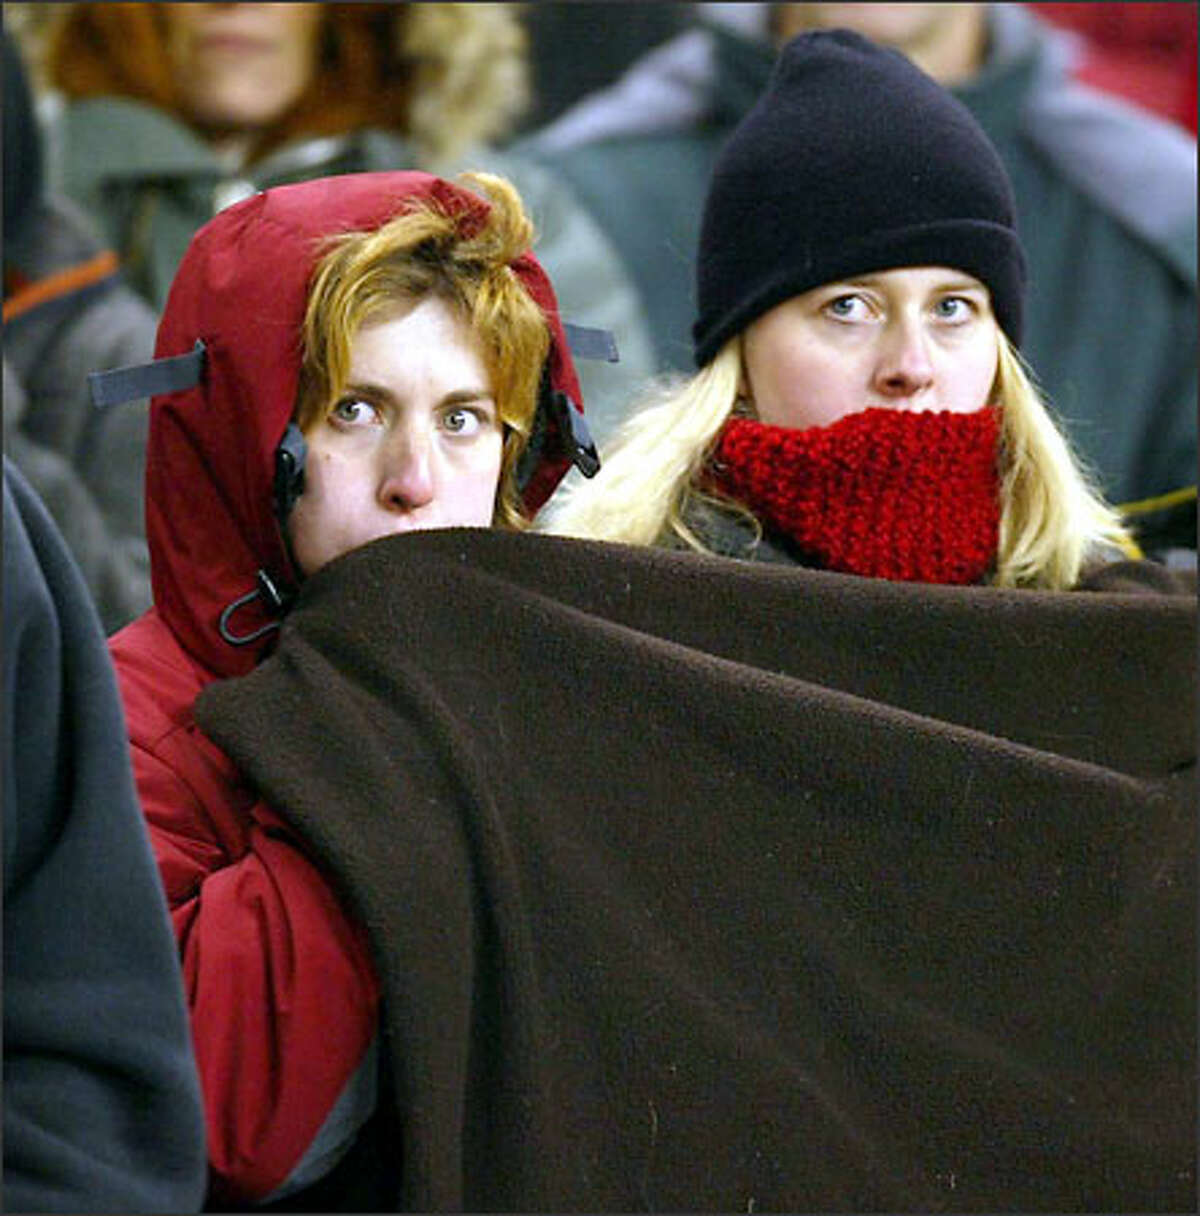 A pair of Cougar fans watch game.